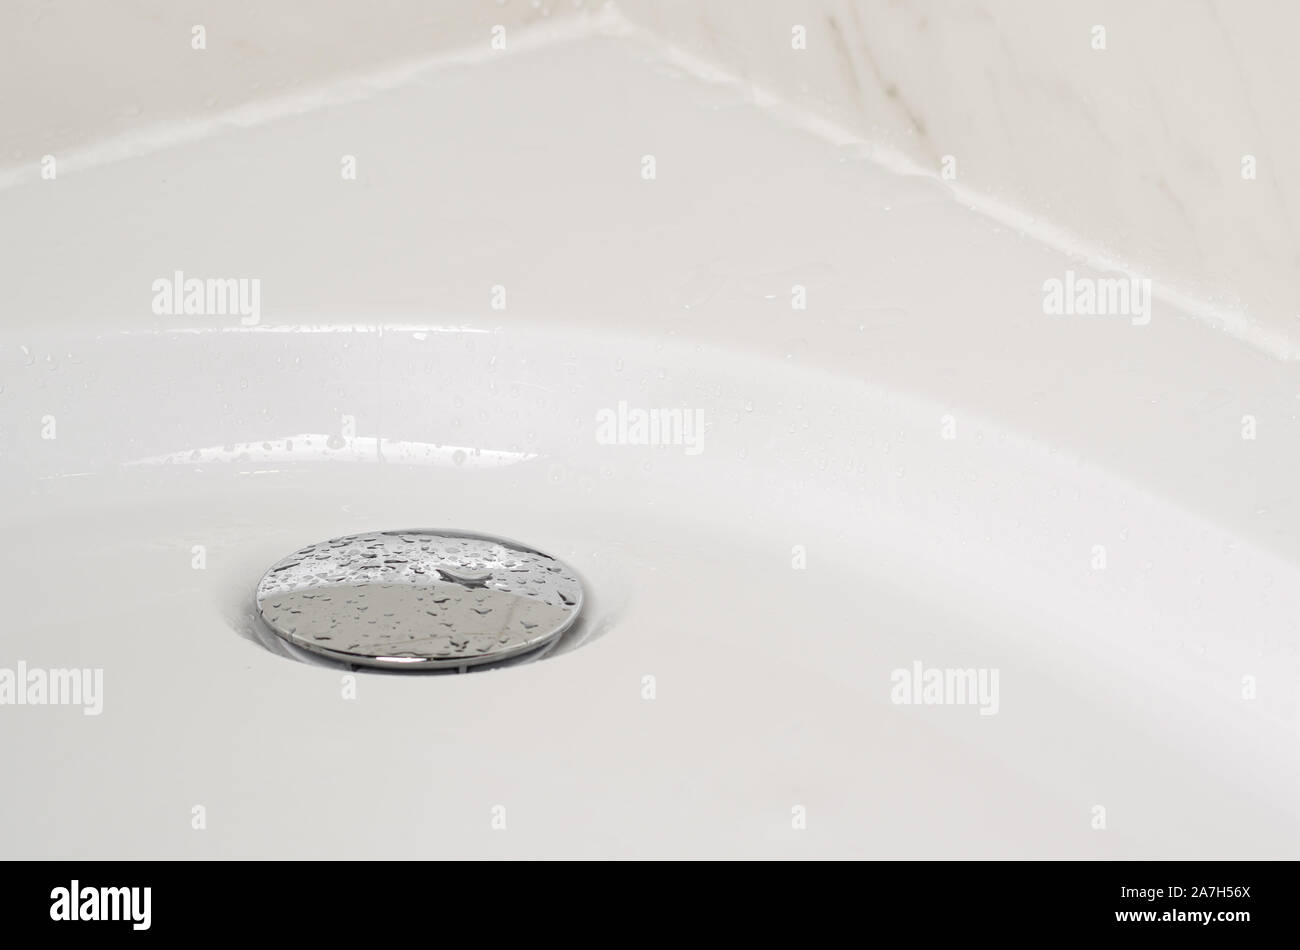 Shower tray and water tap or drain plug with drops of water. Fungus cleaning concept. Stock Photo